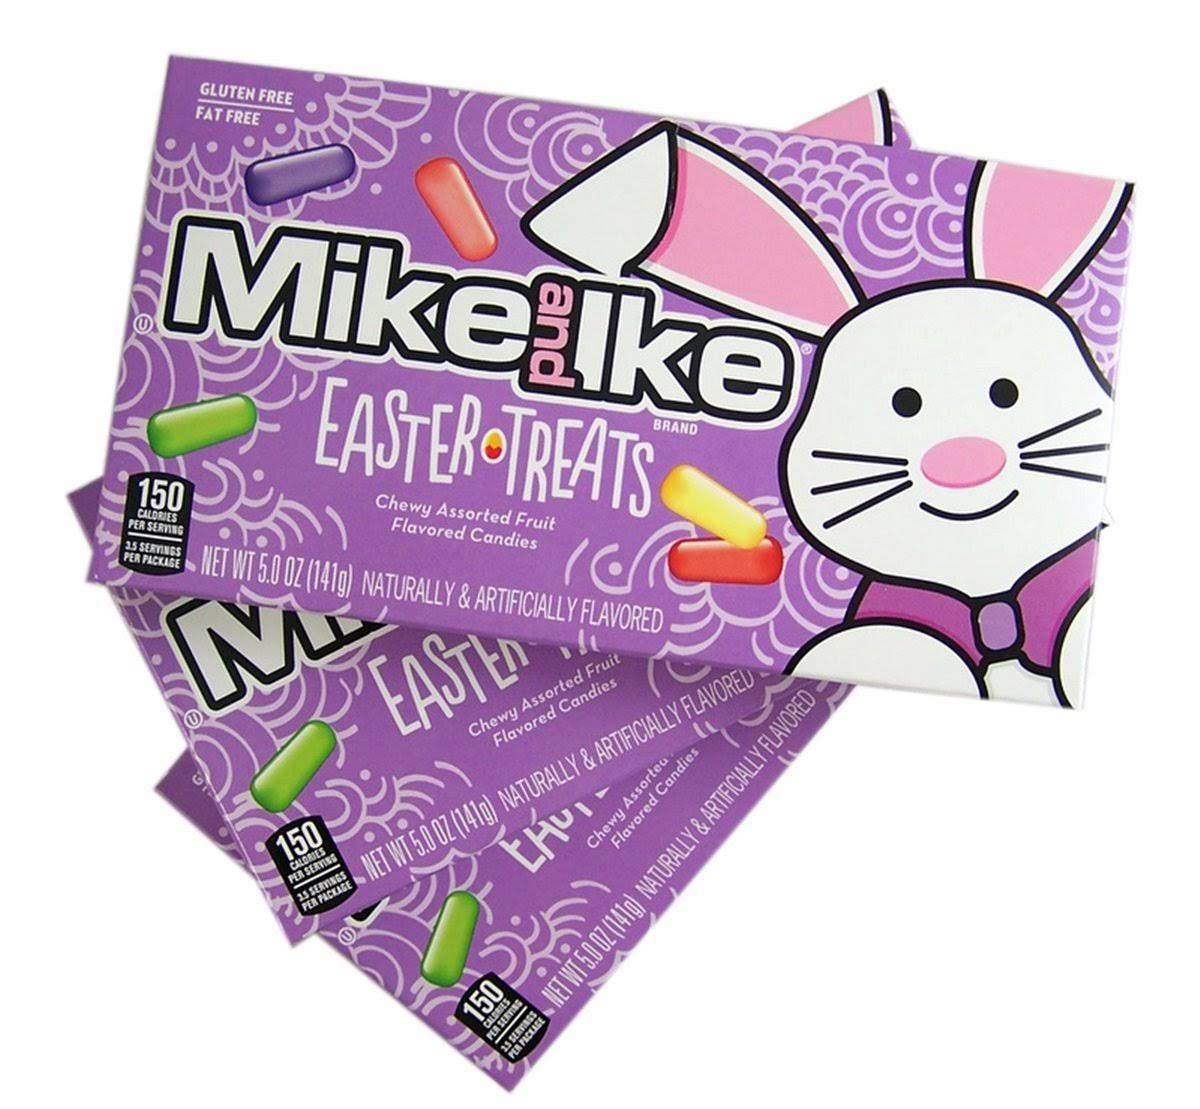 Mike and Ike Easter Treats Theatre Box